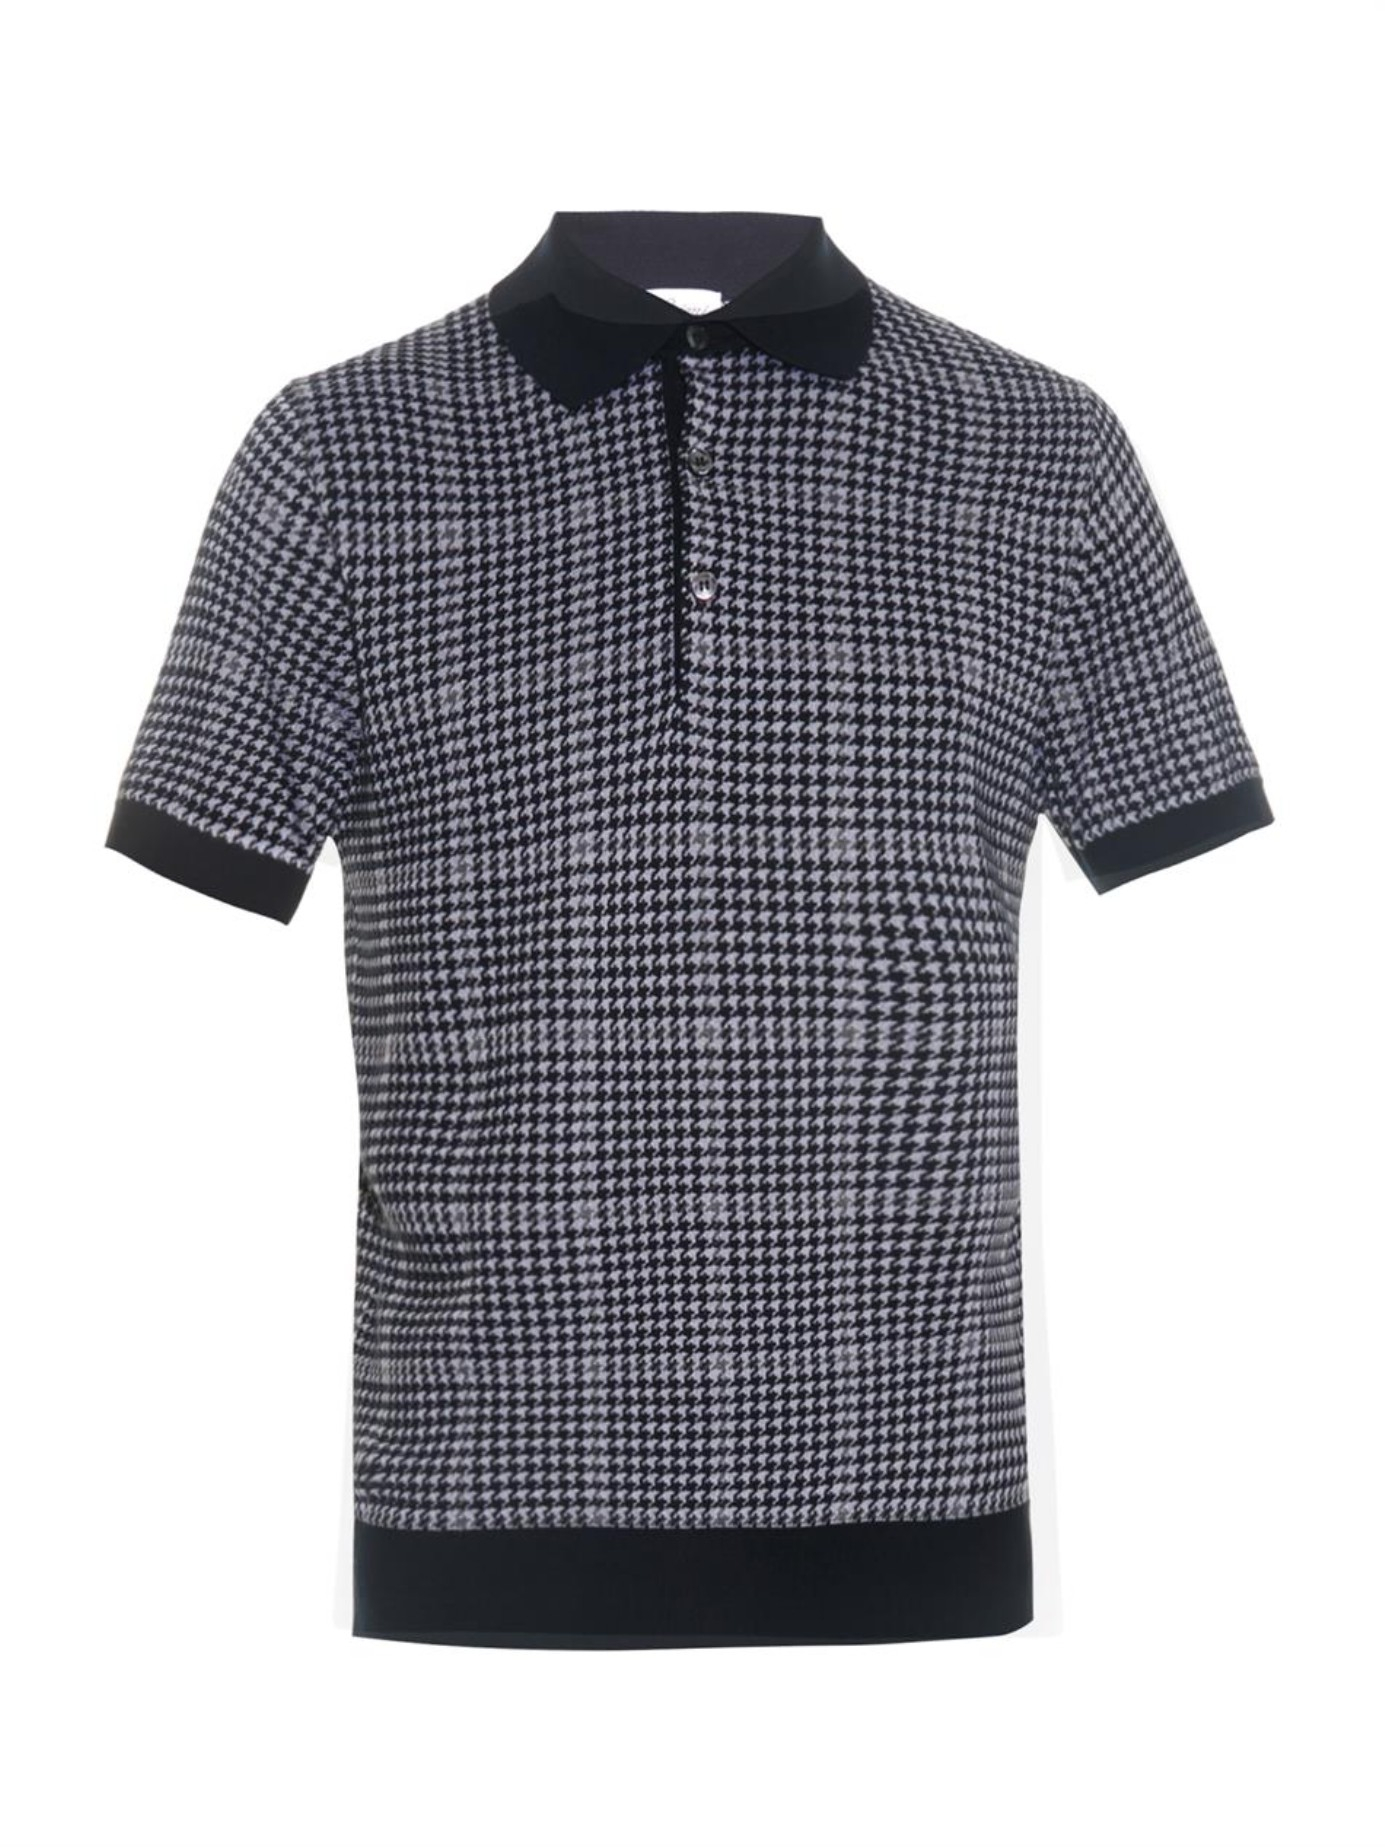 7e3757d1819f Lyst - Brioni Houndstooth Knitted Polo Shirt in Blue for Men